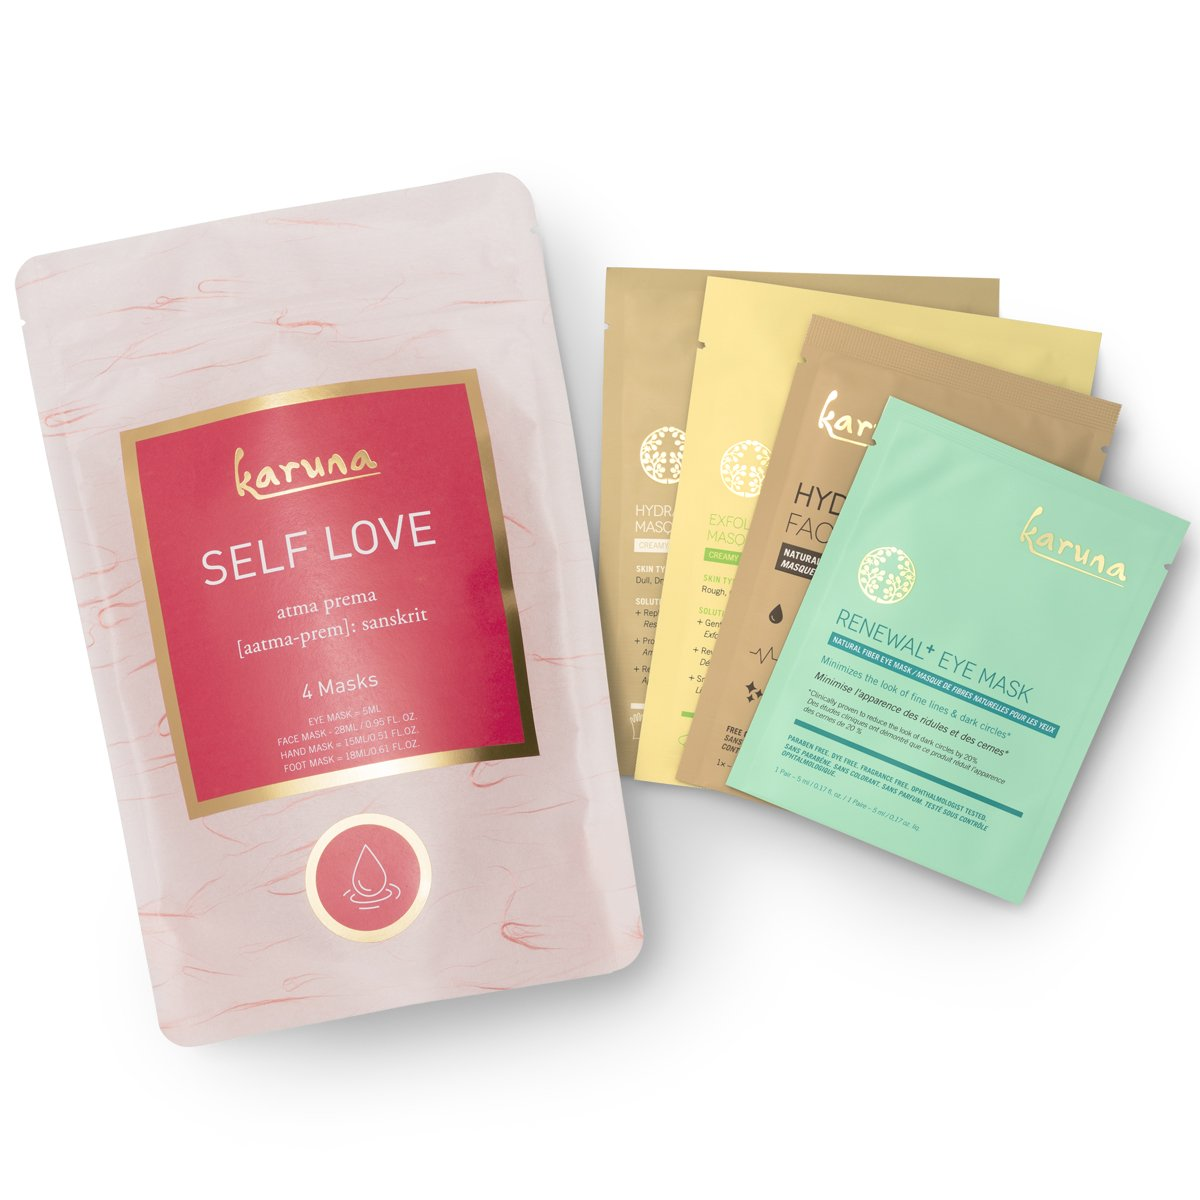 KARUNA SELF-LOVE KIT